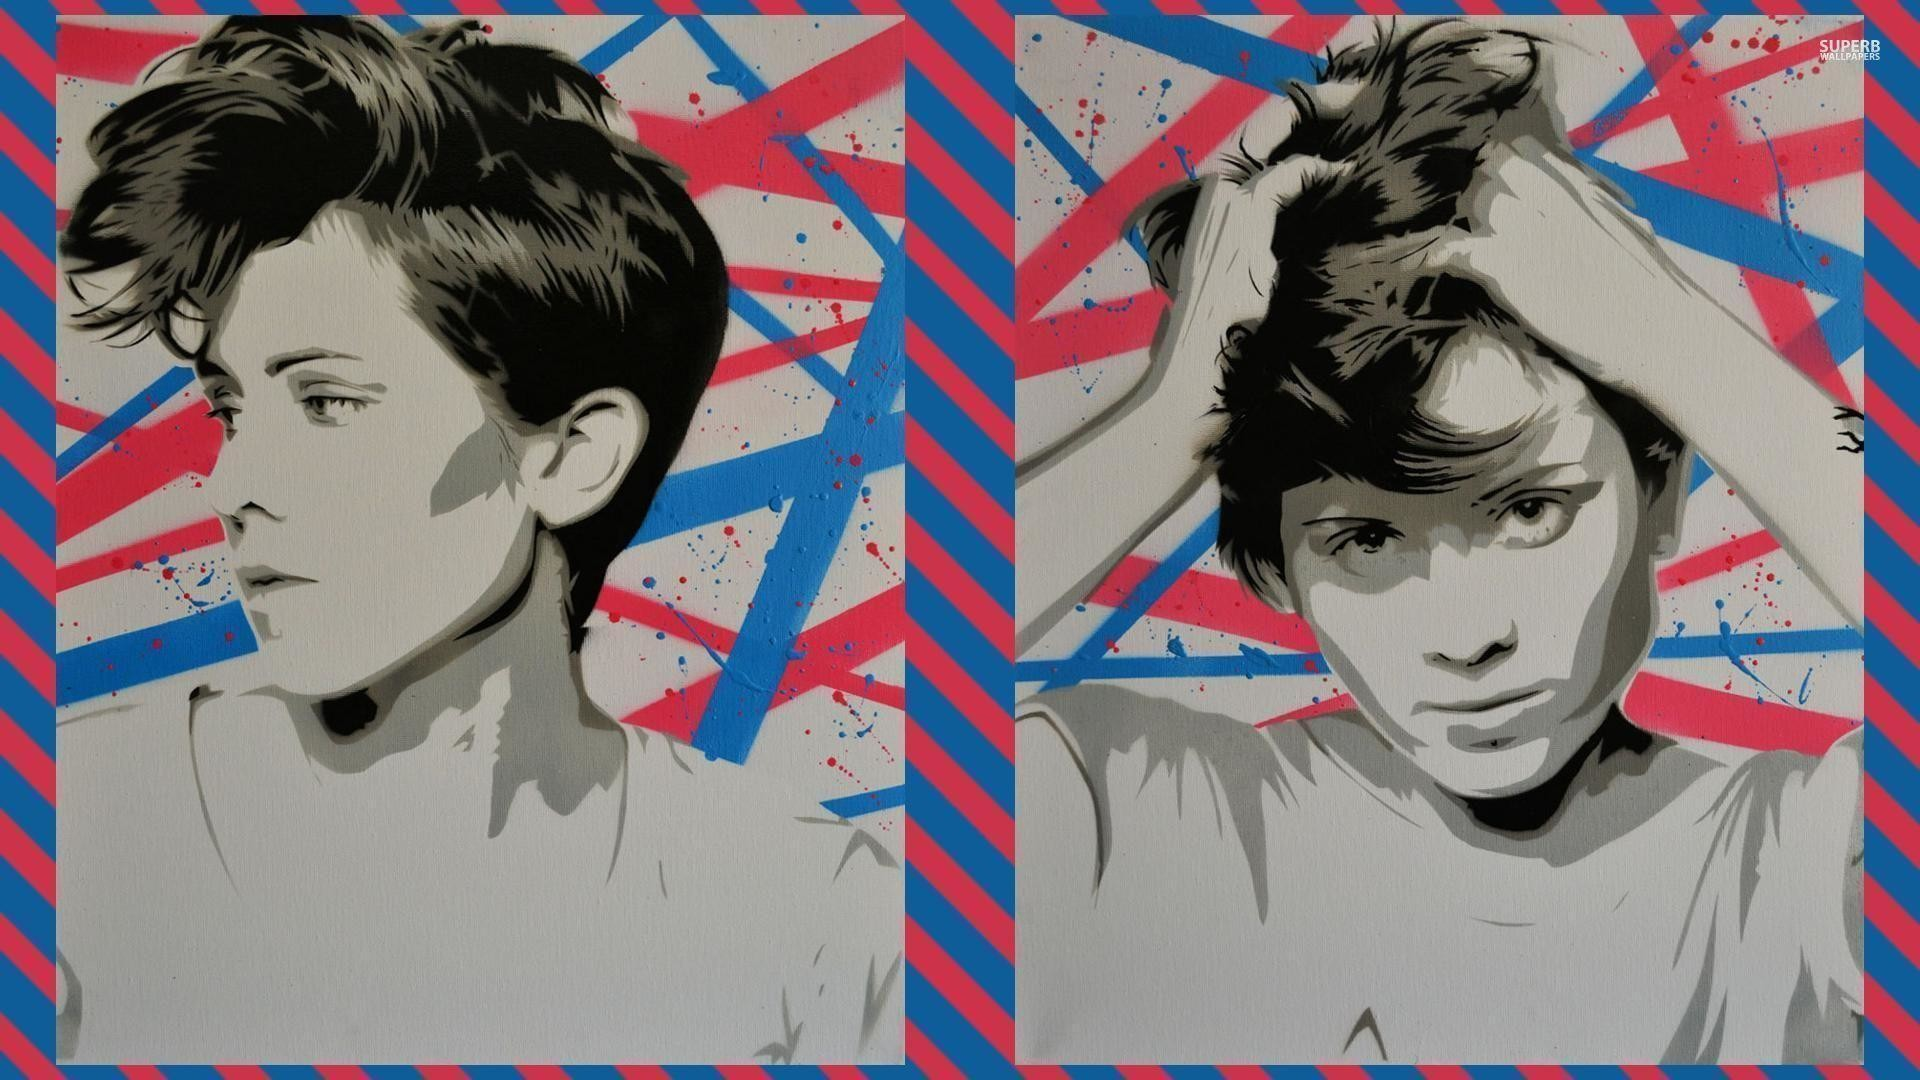 1920x1080 Tegan and Sara wallpaper - Music wallpapers - #